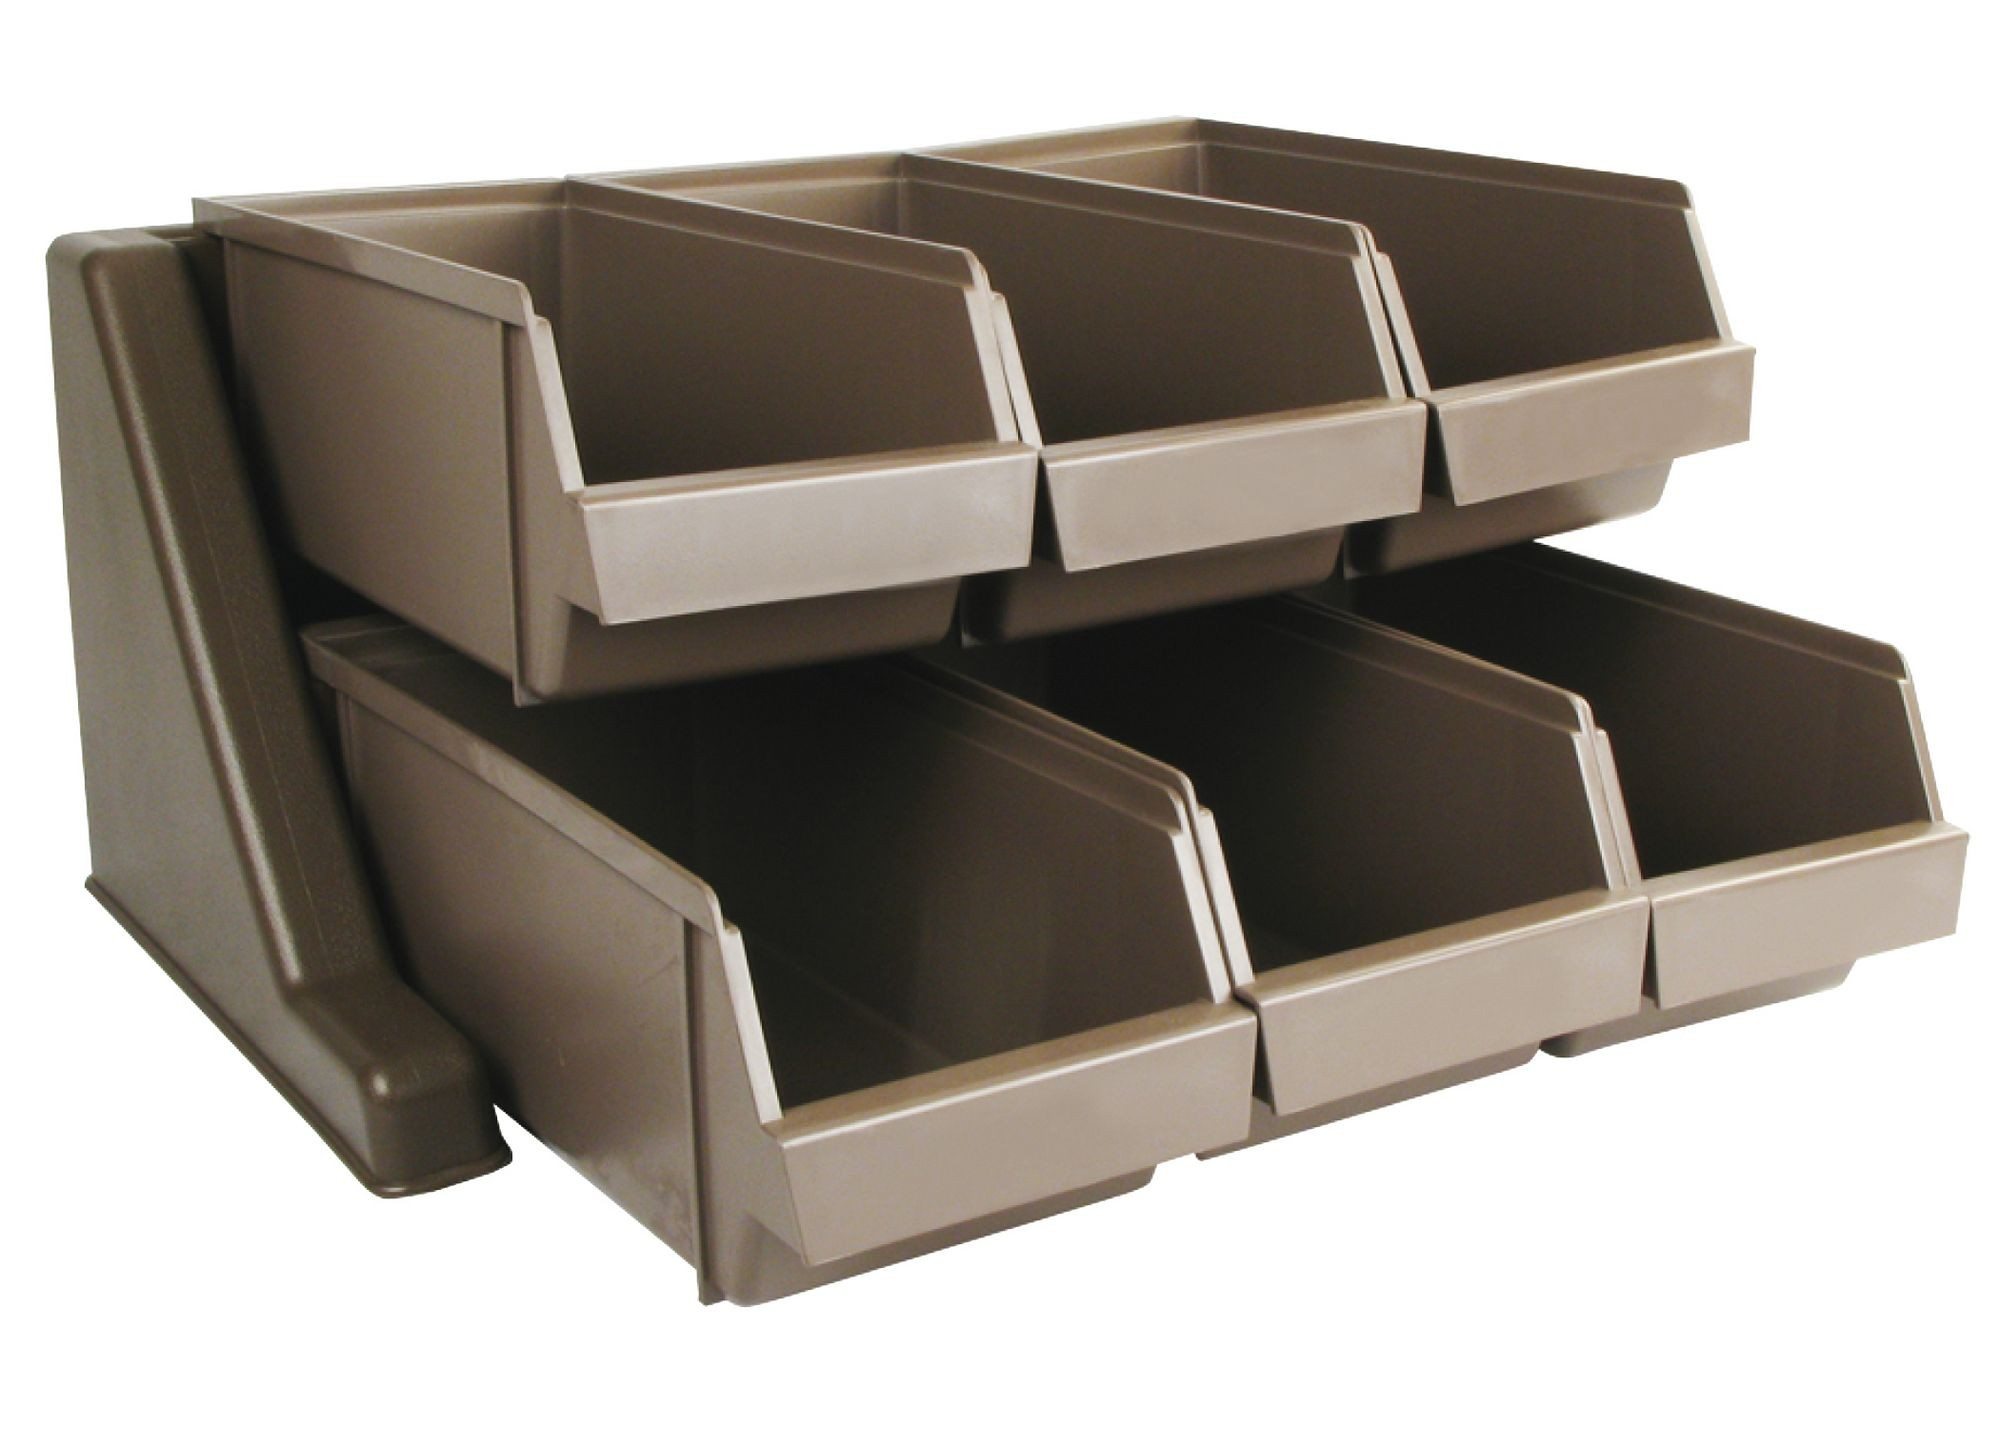 Winco OGZ-6 Plastic Bin Organizer Set with Rack and 6-Bins